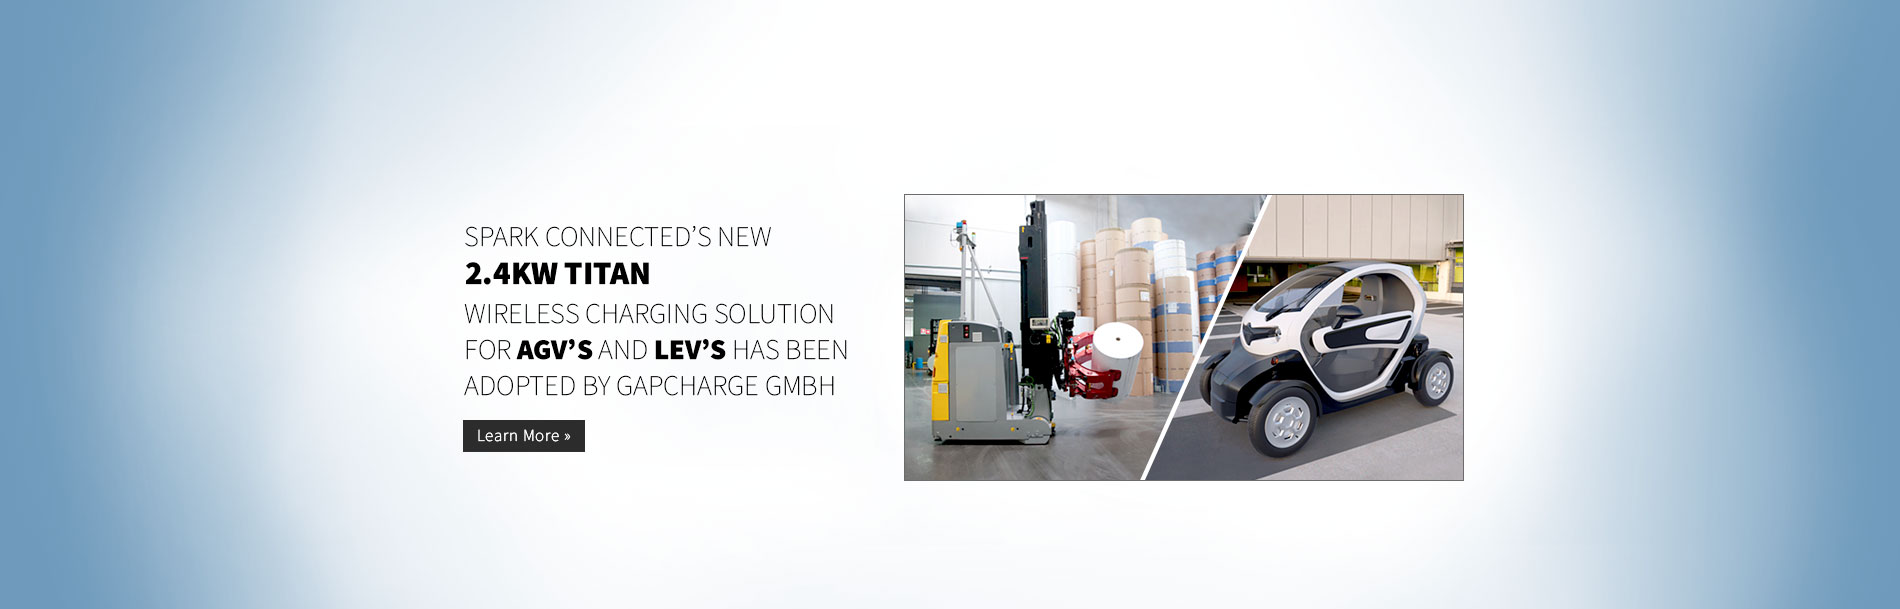 Press Release – Spark Connected's New 2.4kW Titan Wireless Charging Solution for AGV's and LEV's adopted by gapcharge GmbH